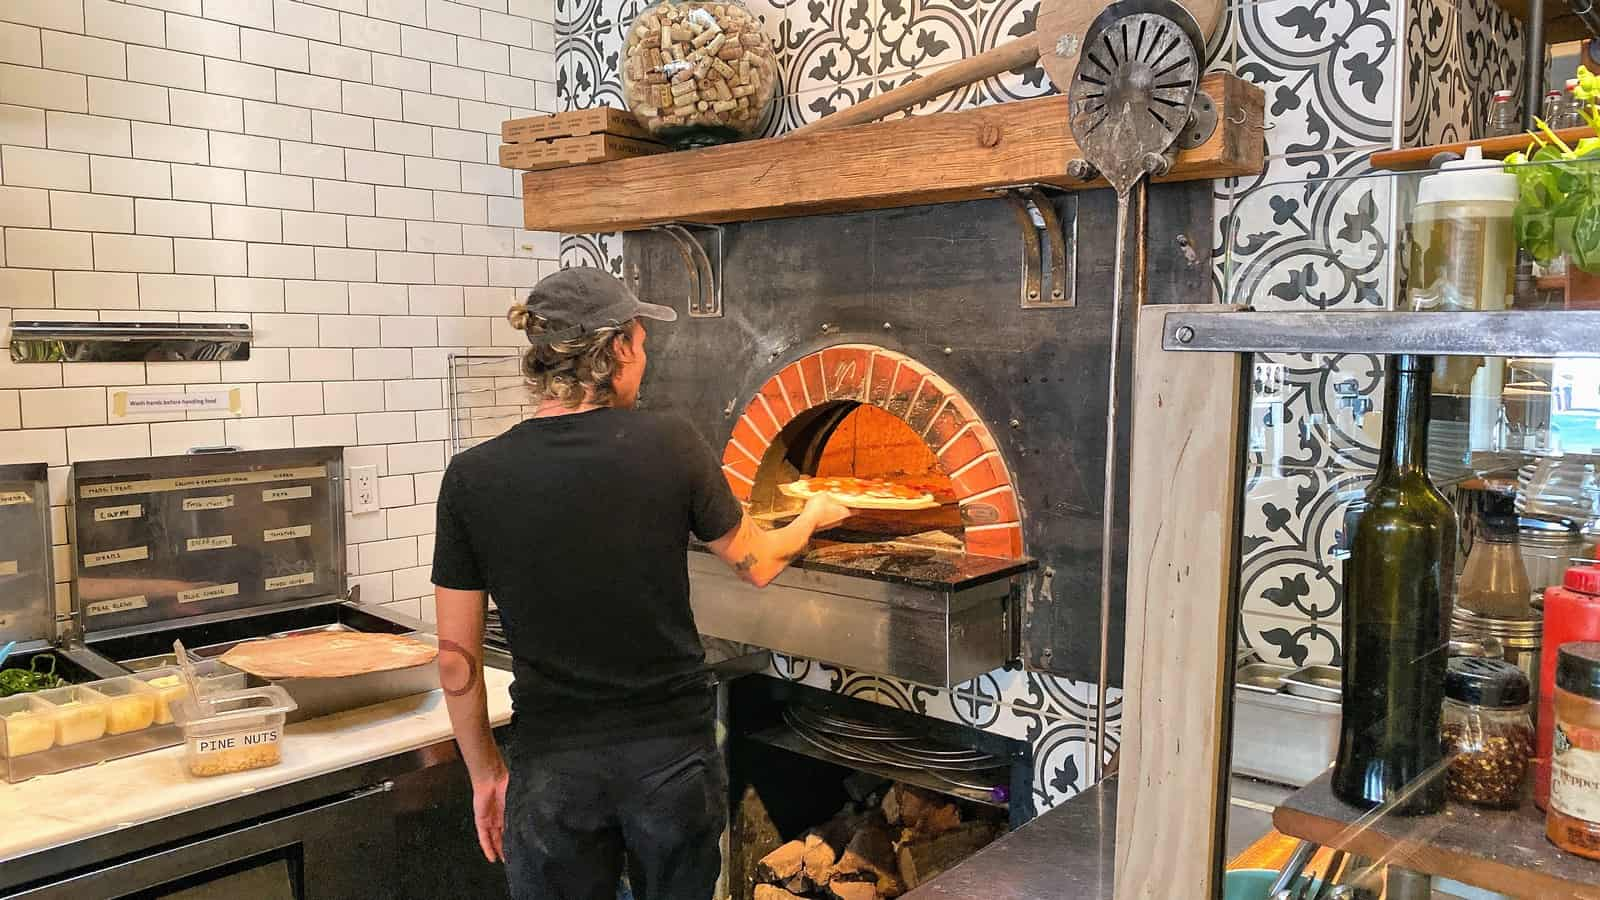 Pizzeria Bello Forno